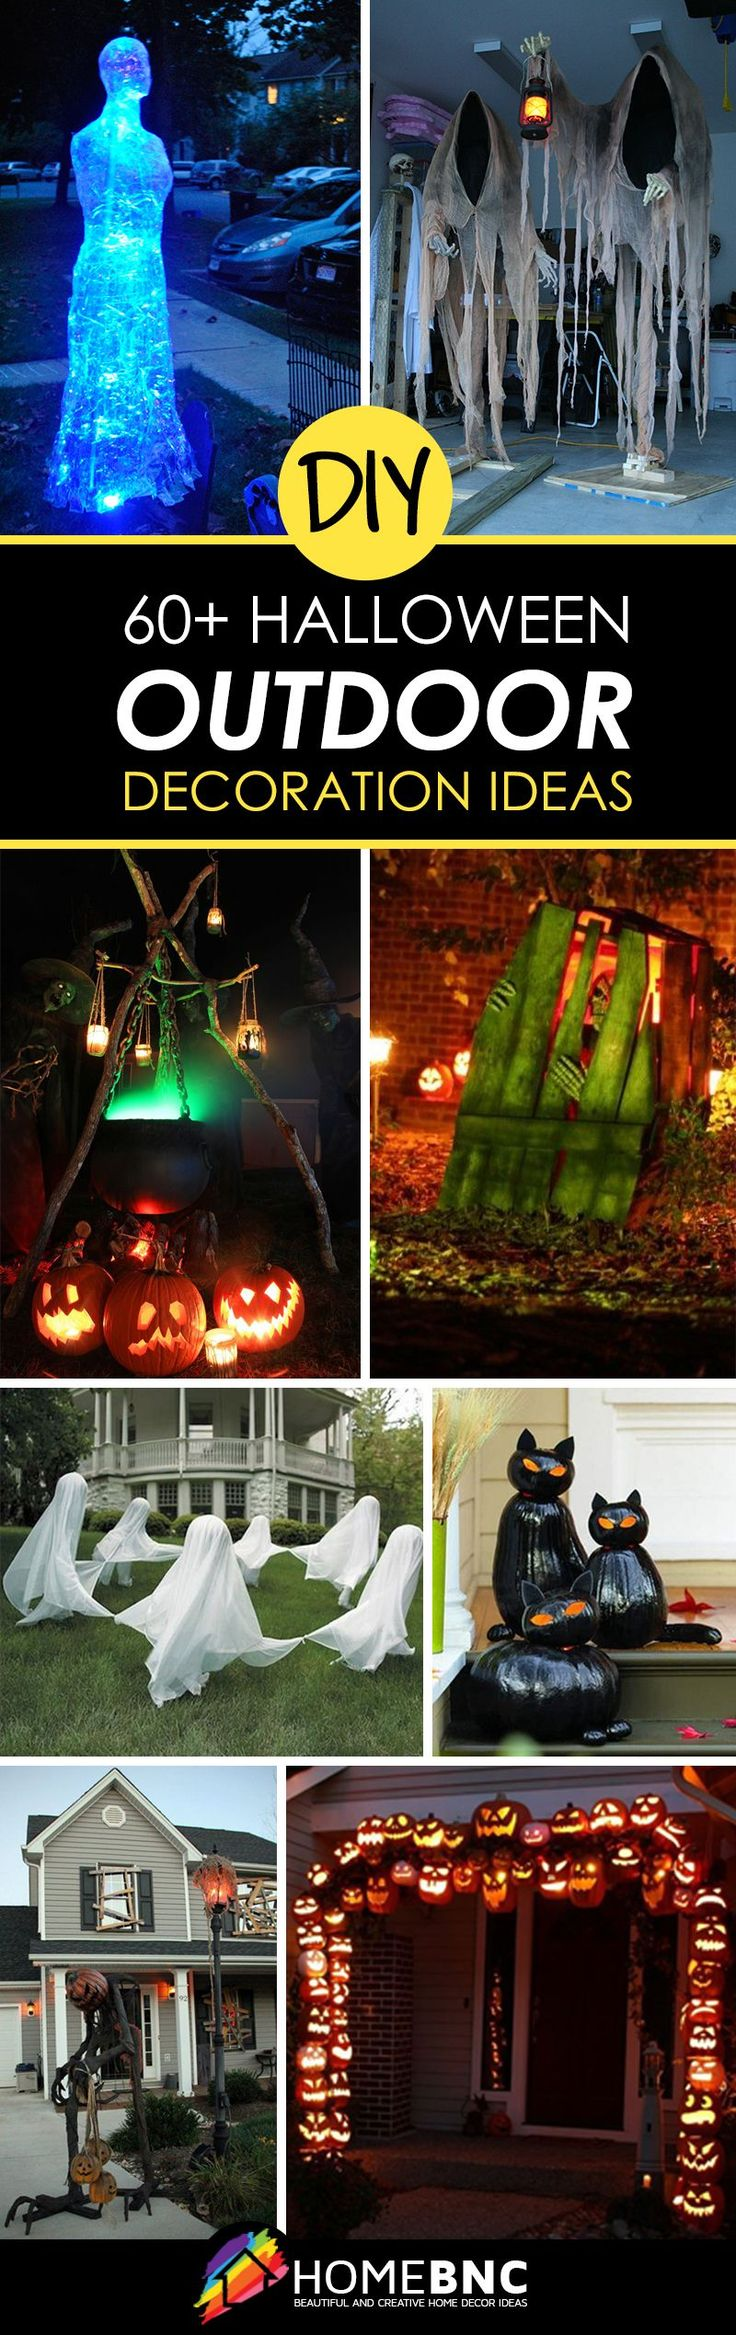 Outdoor+Halloween+Decor+Ideas